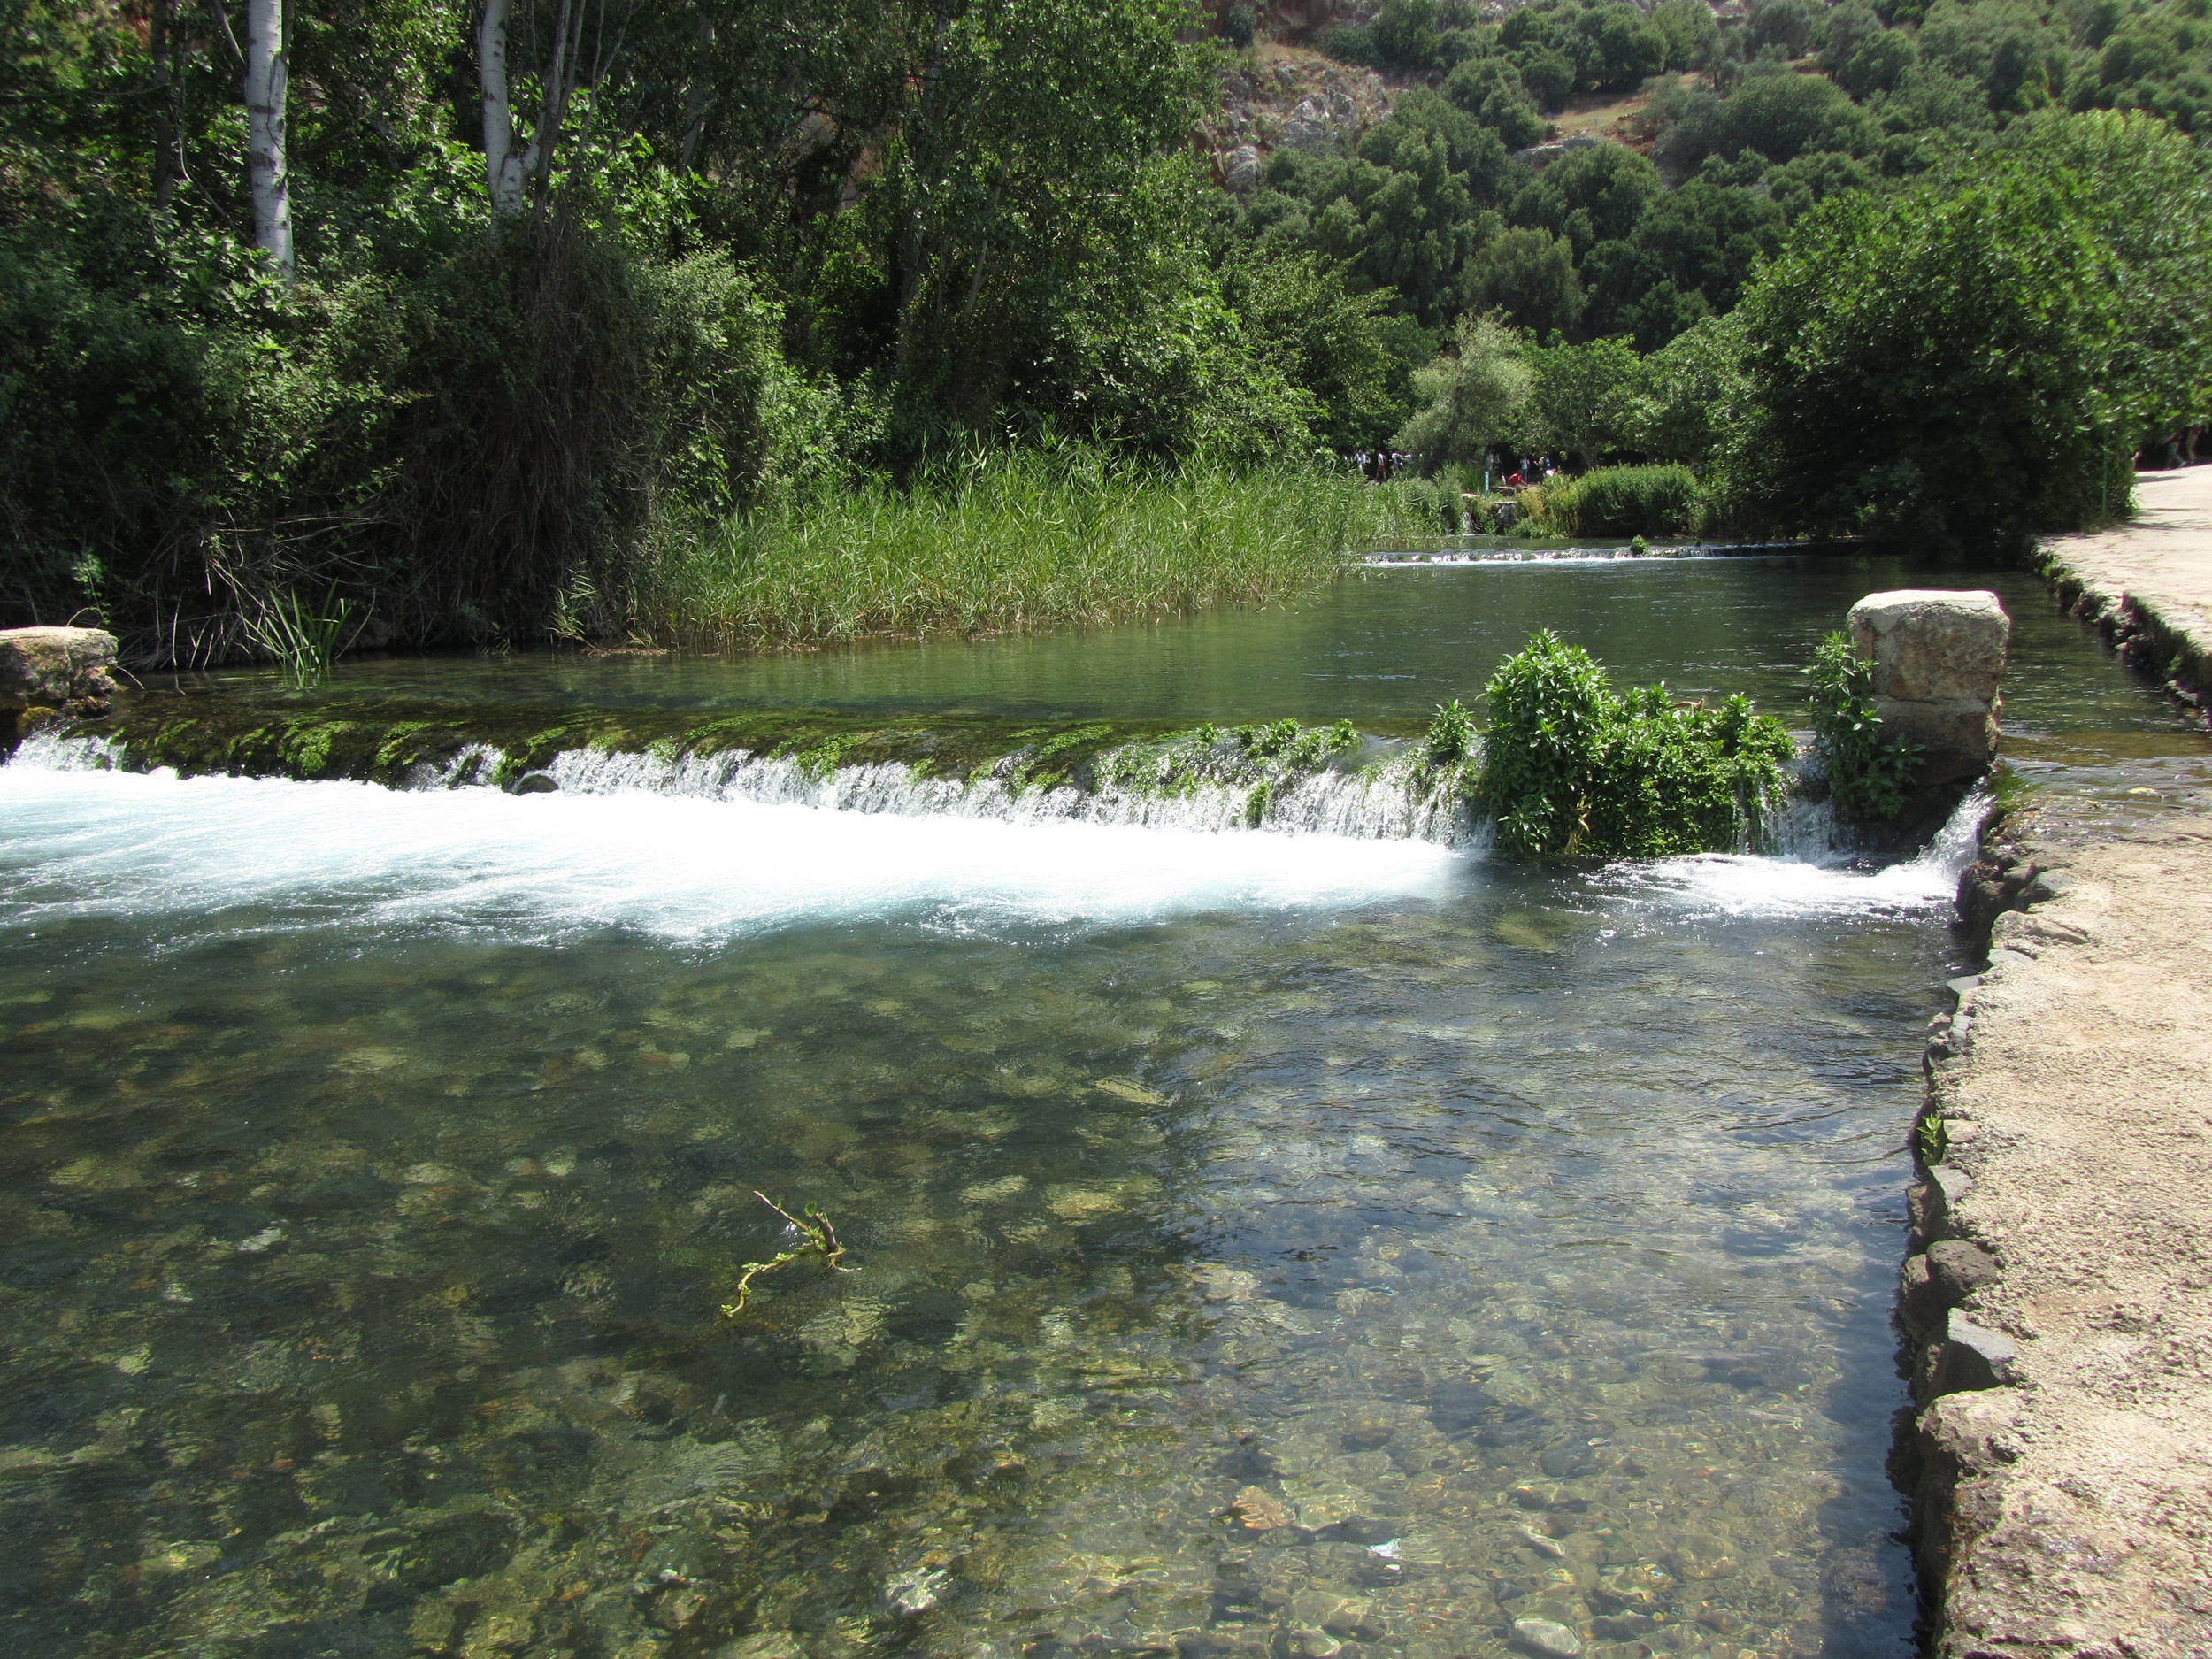 The head waters of the Jordan River flow from the spring of Banias.